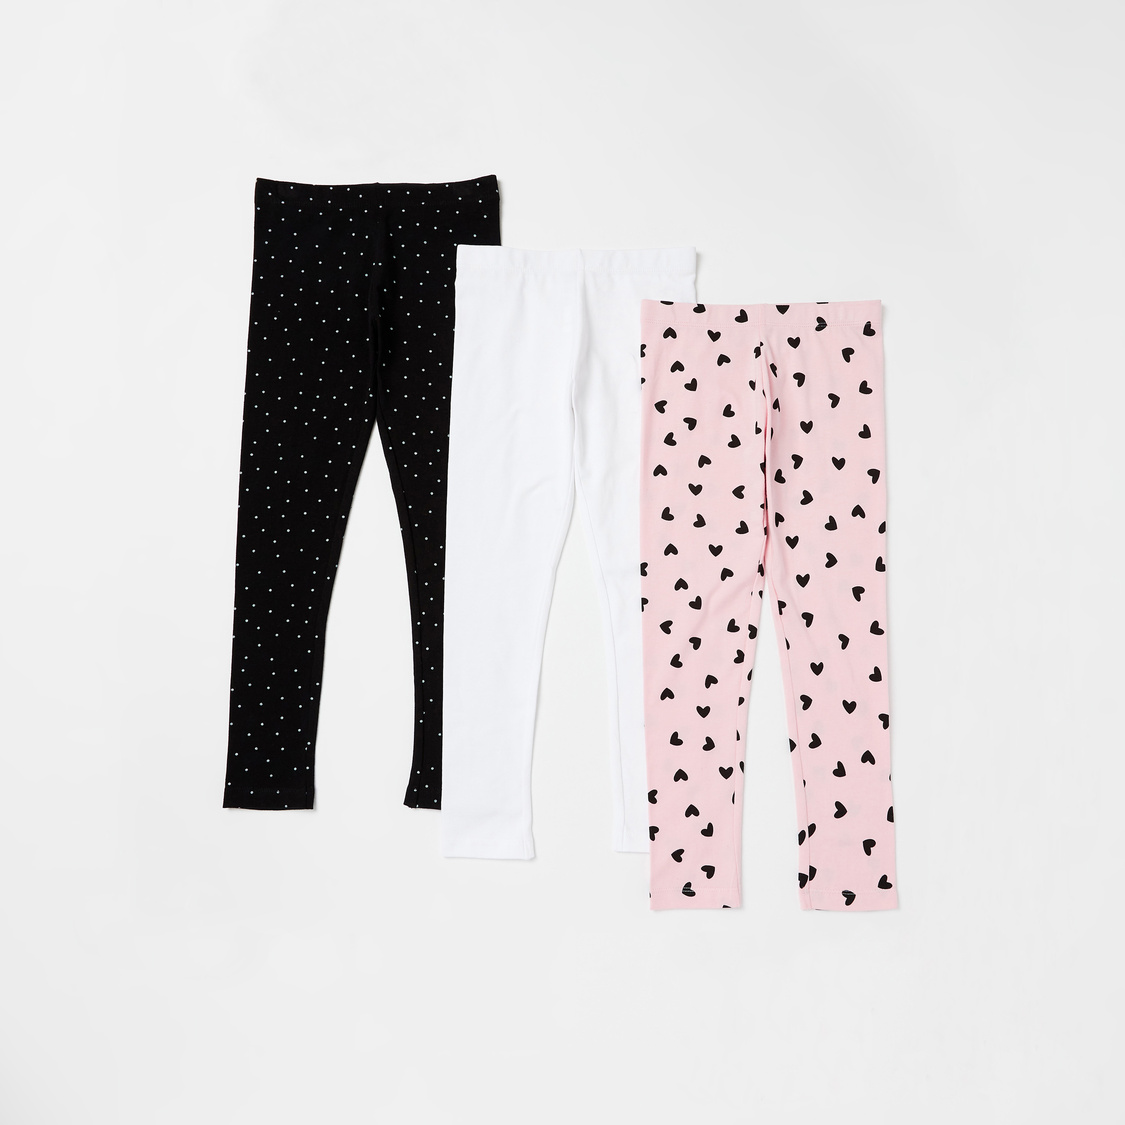 Set of 3 - Assorted Full Length Leggings with Elasticised Waistband